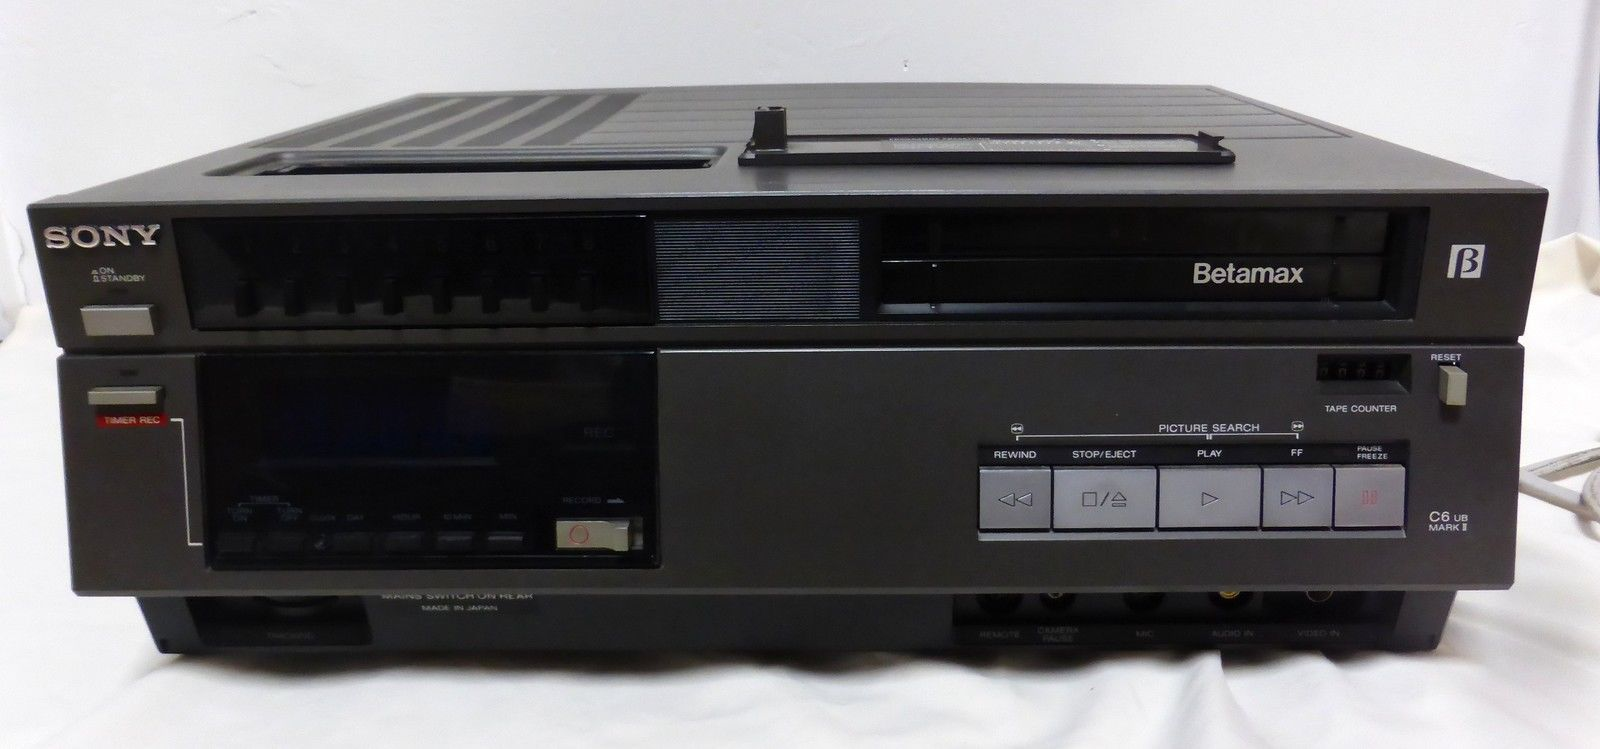 Sony Betamax C6 Ub Mark Ii Video Recorder For Spares Or Repair Ebay